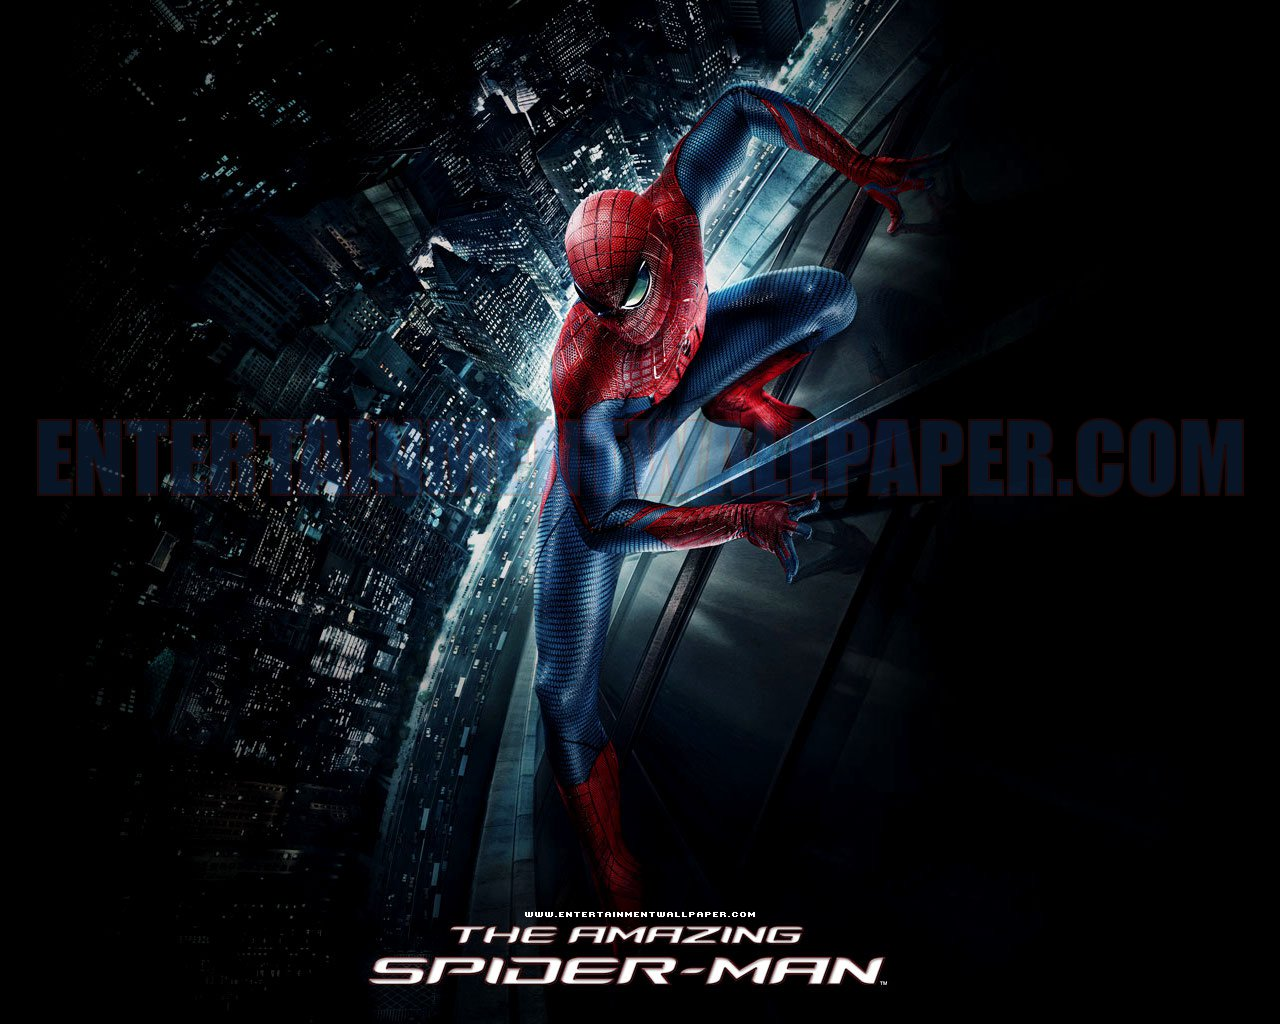 The Amazing Spiderman, Hollywood English Film Review